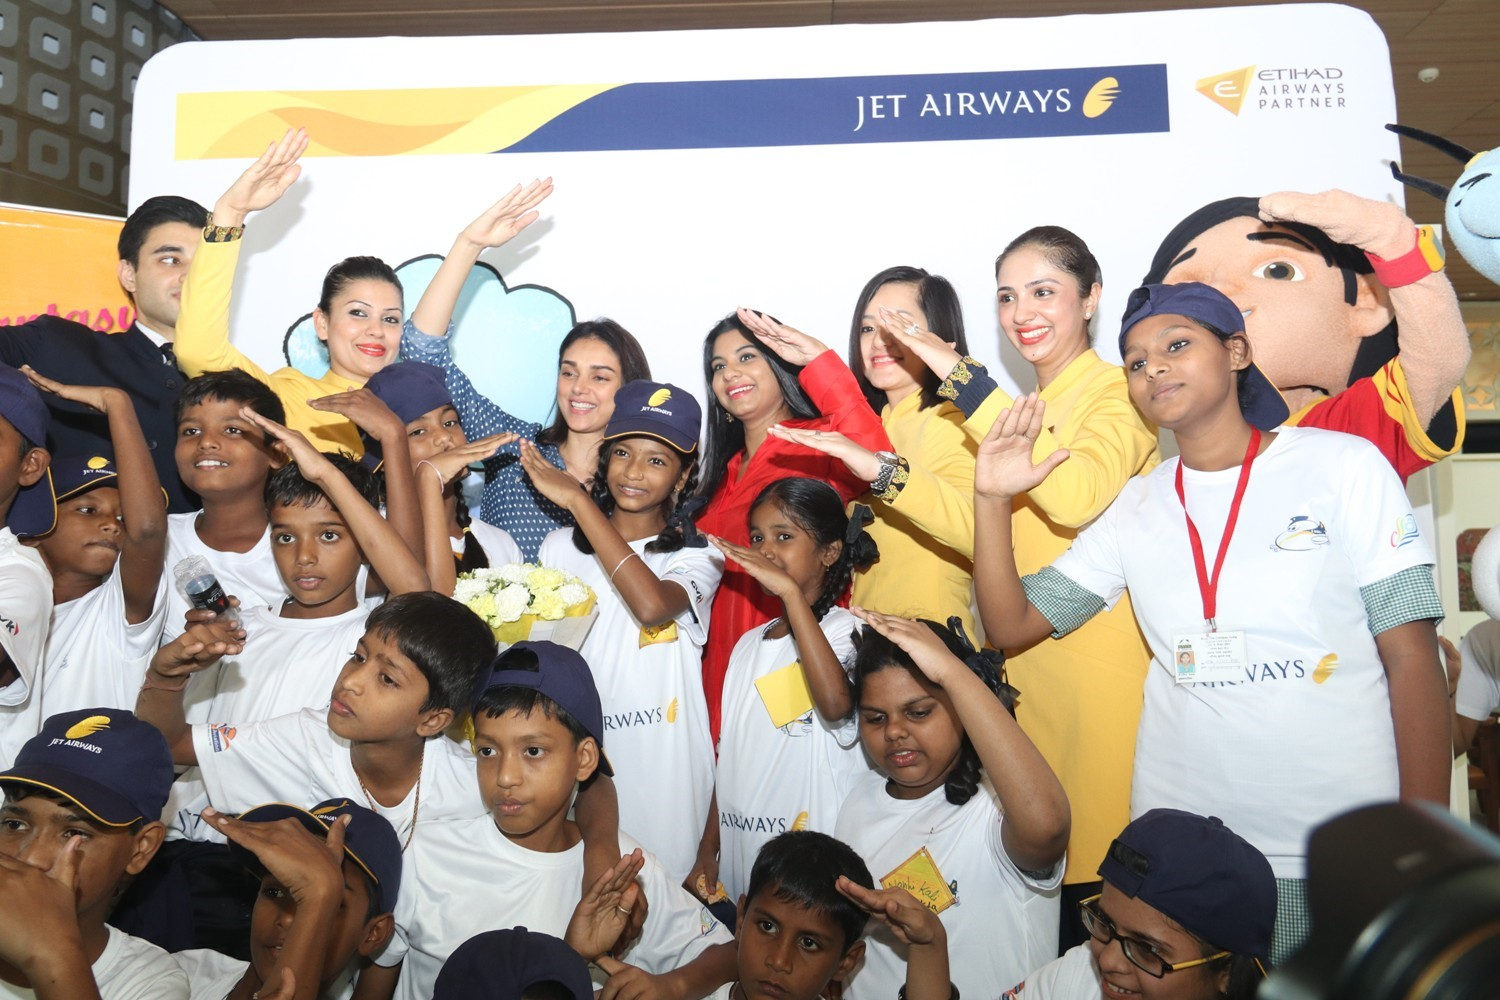 Jet Airways celebrated Children's Day by giving joy ride to more than 100 less privileged children